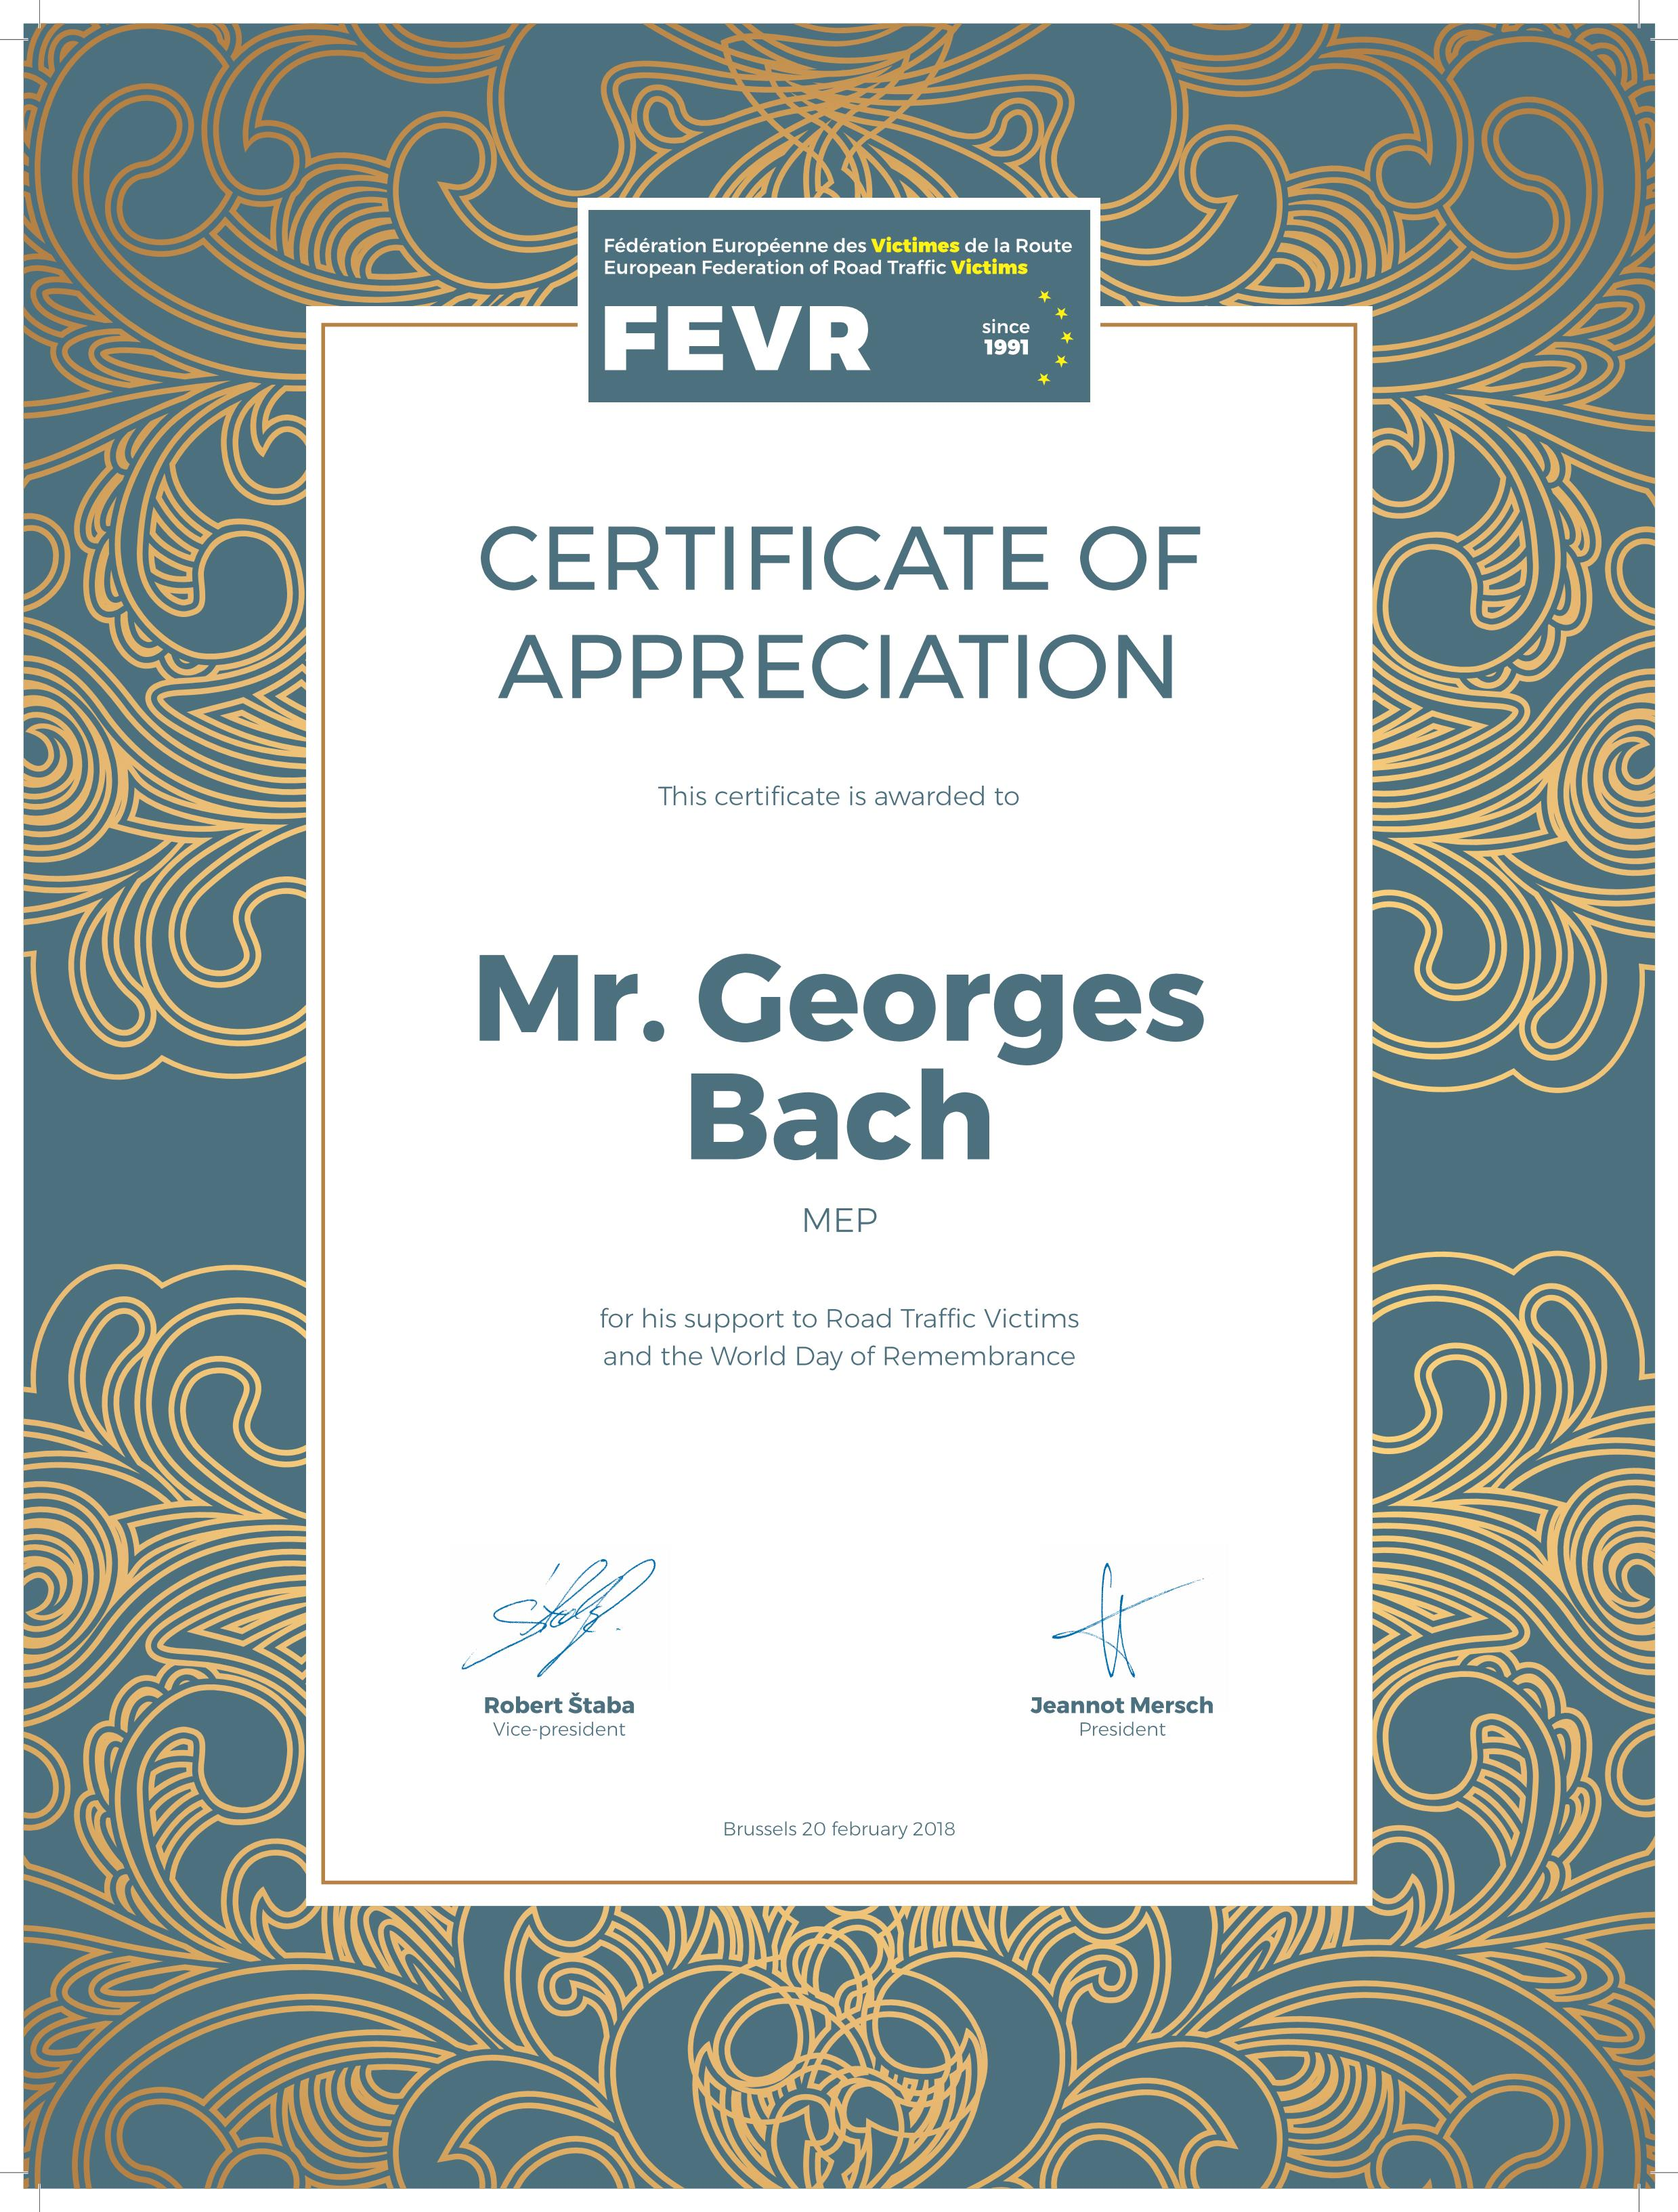 Certificate of appreciation for mr bach fevr fevr wants to thank georges bach mep and member of the european parliament transport committee with a certificate of appreciation for his support to road yelopaper Images